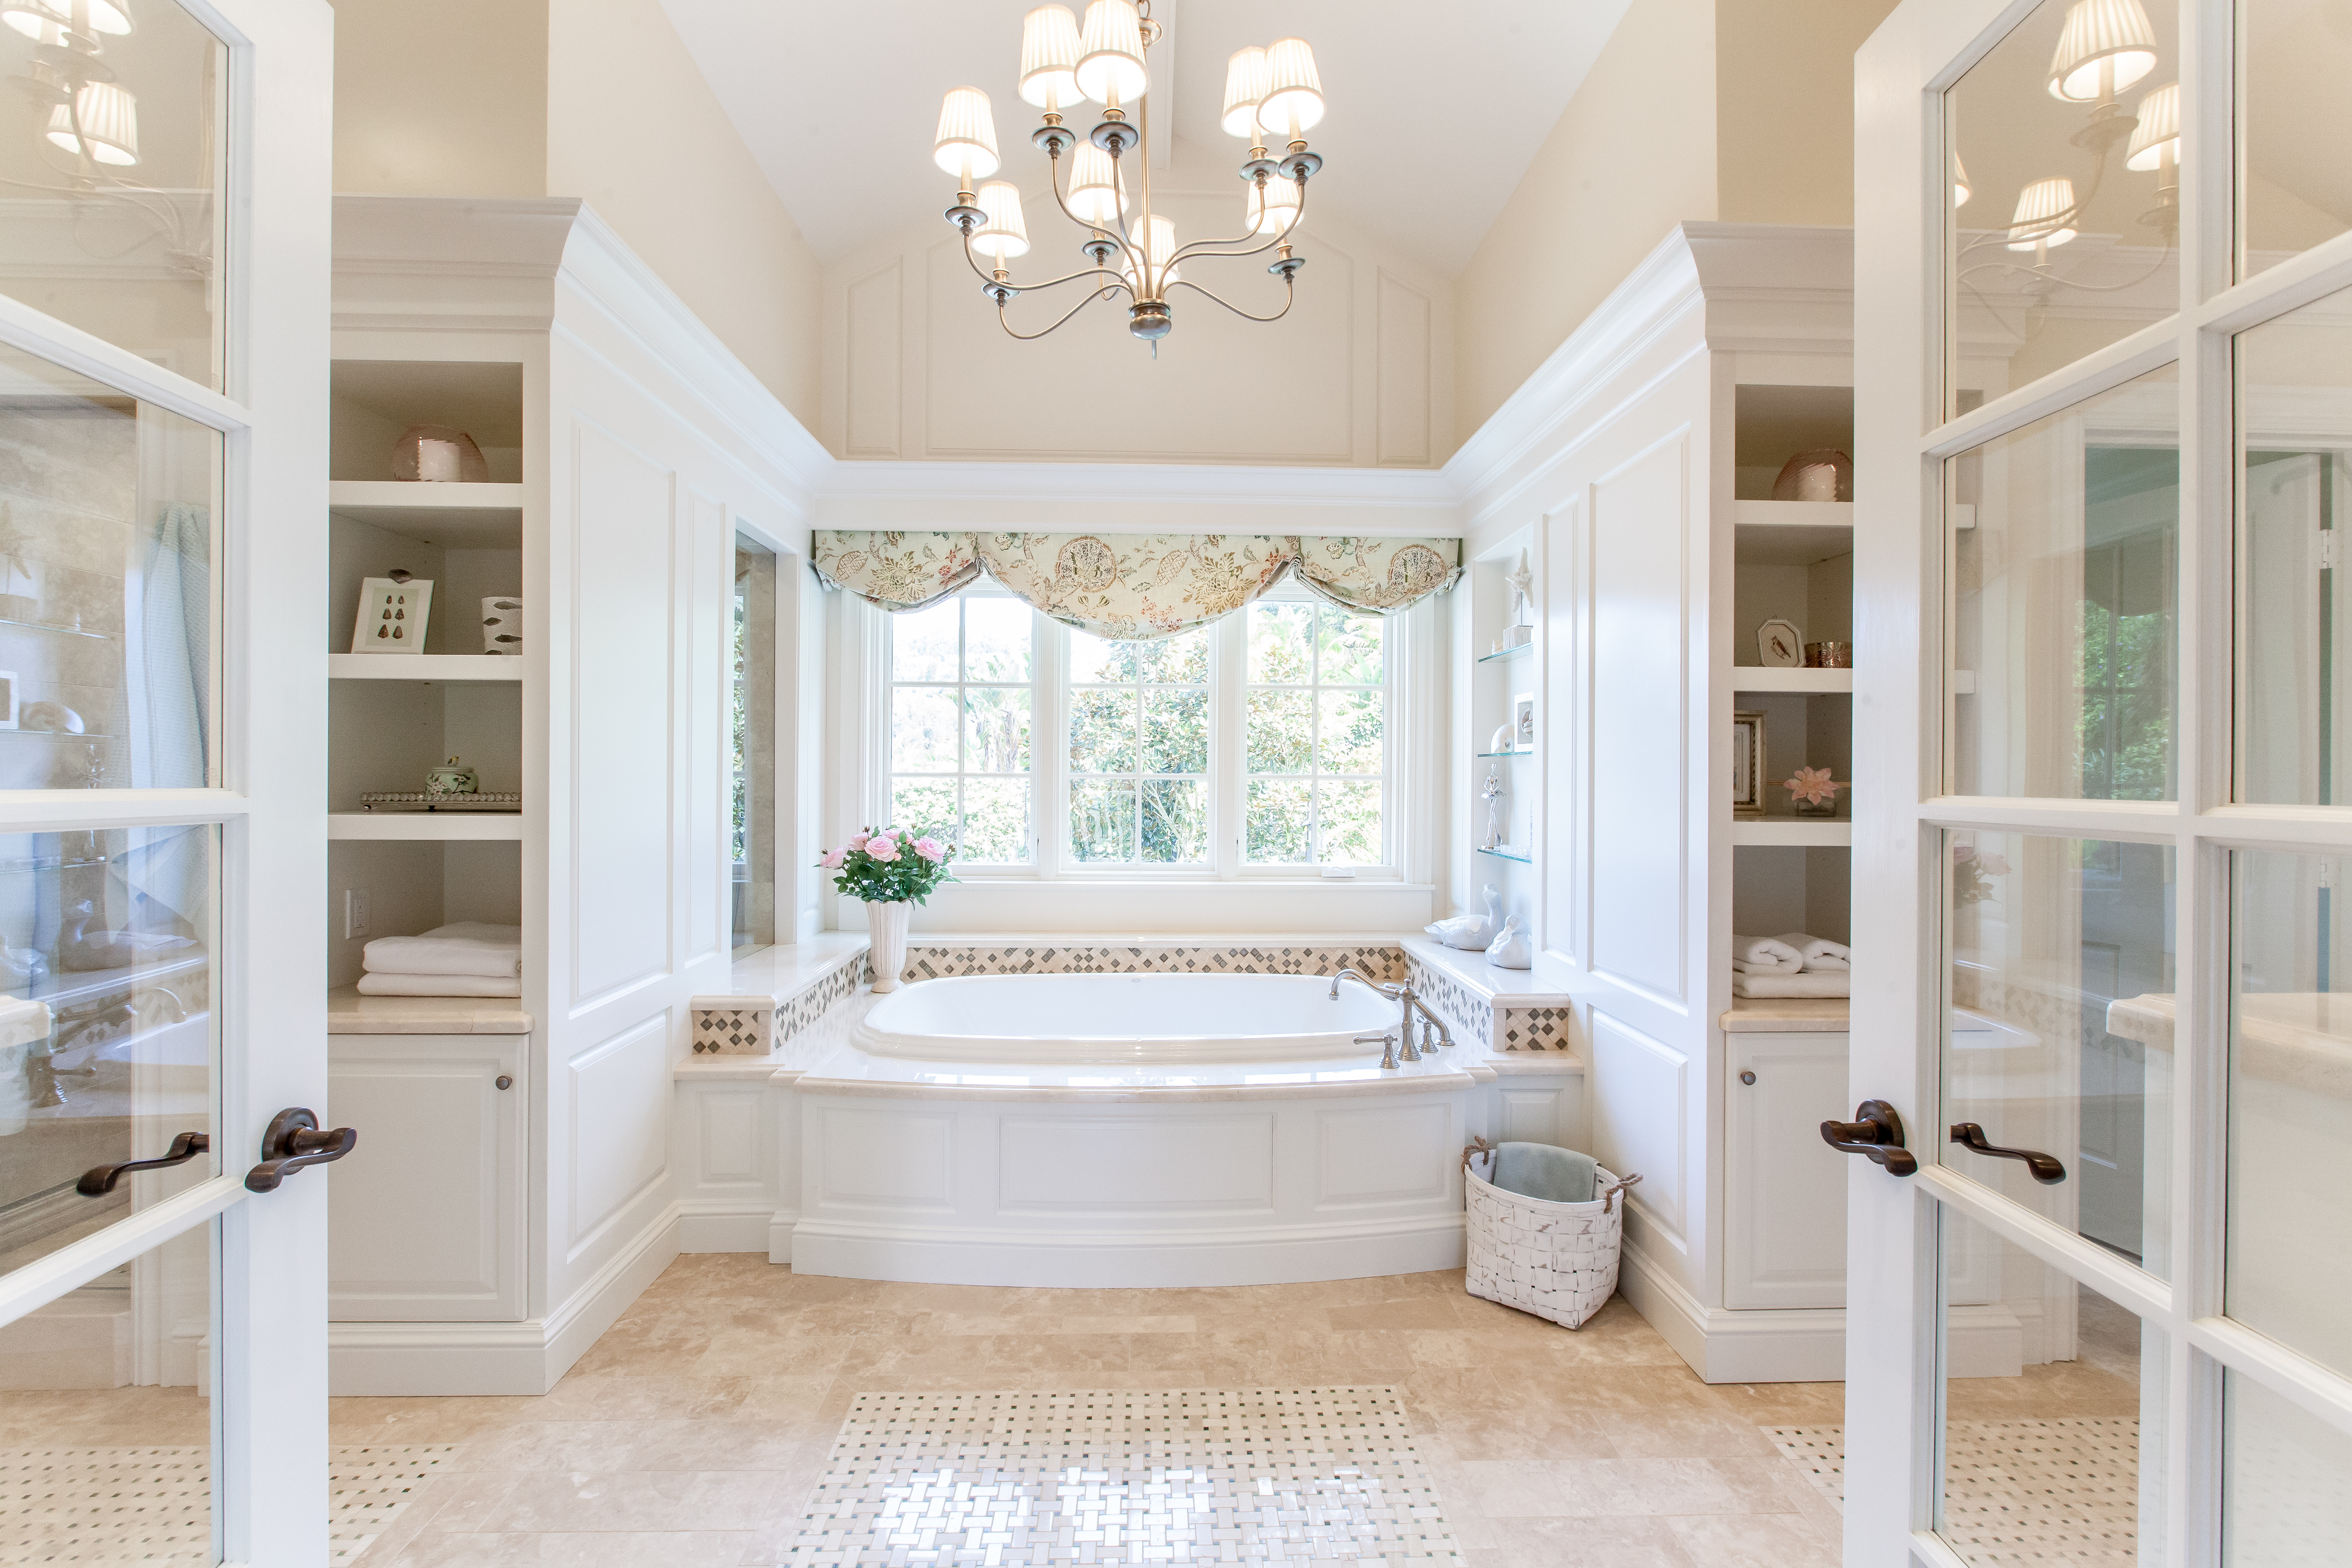 Here are some photographs of two bathrooms we built that are fit for ...